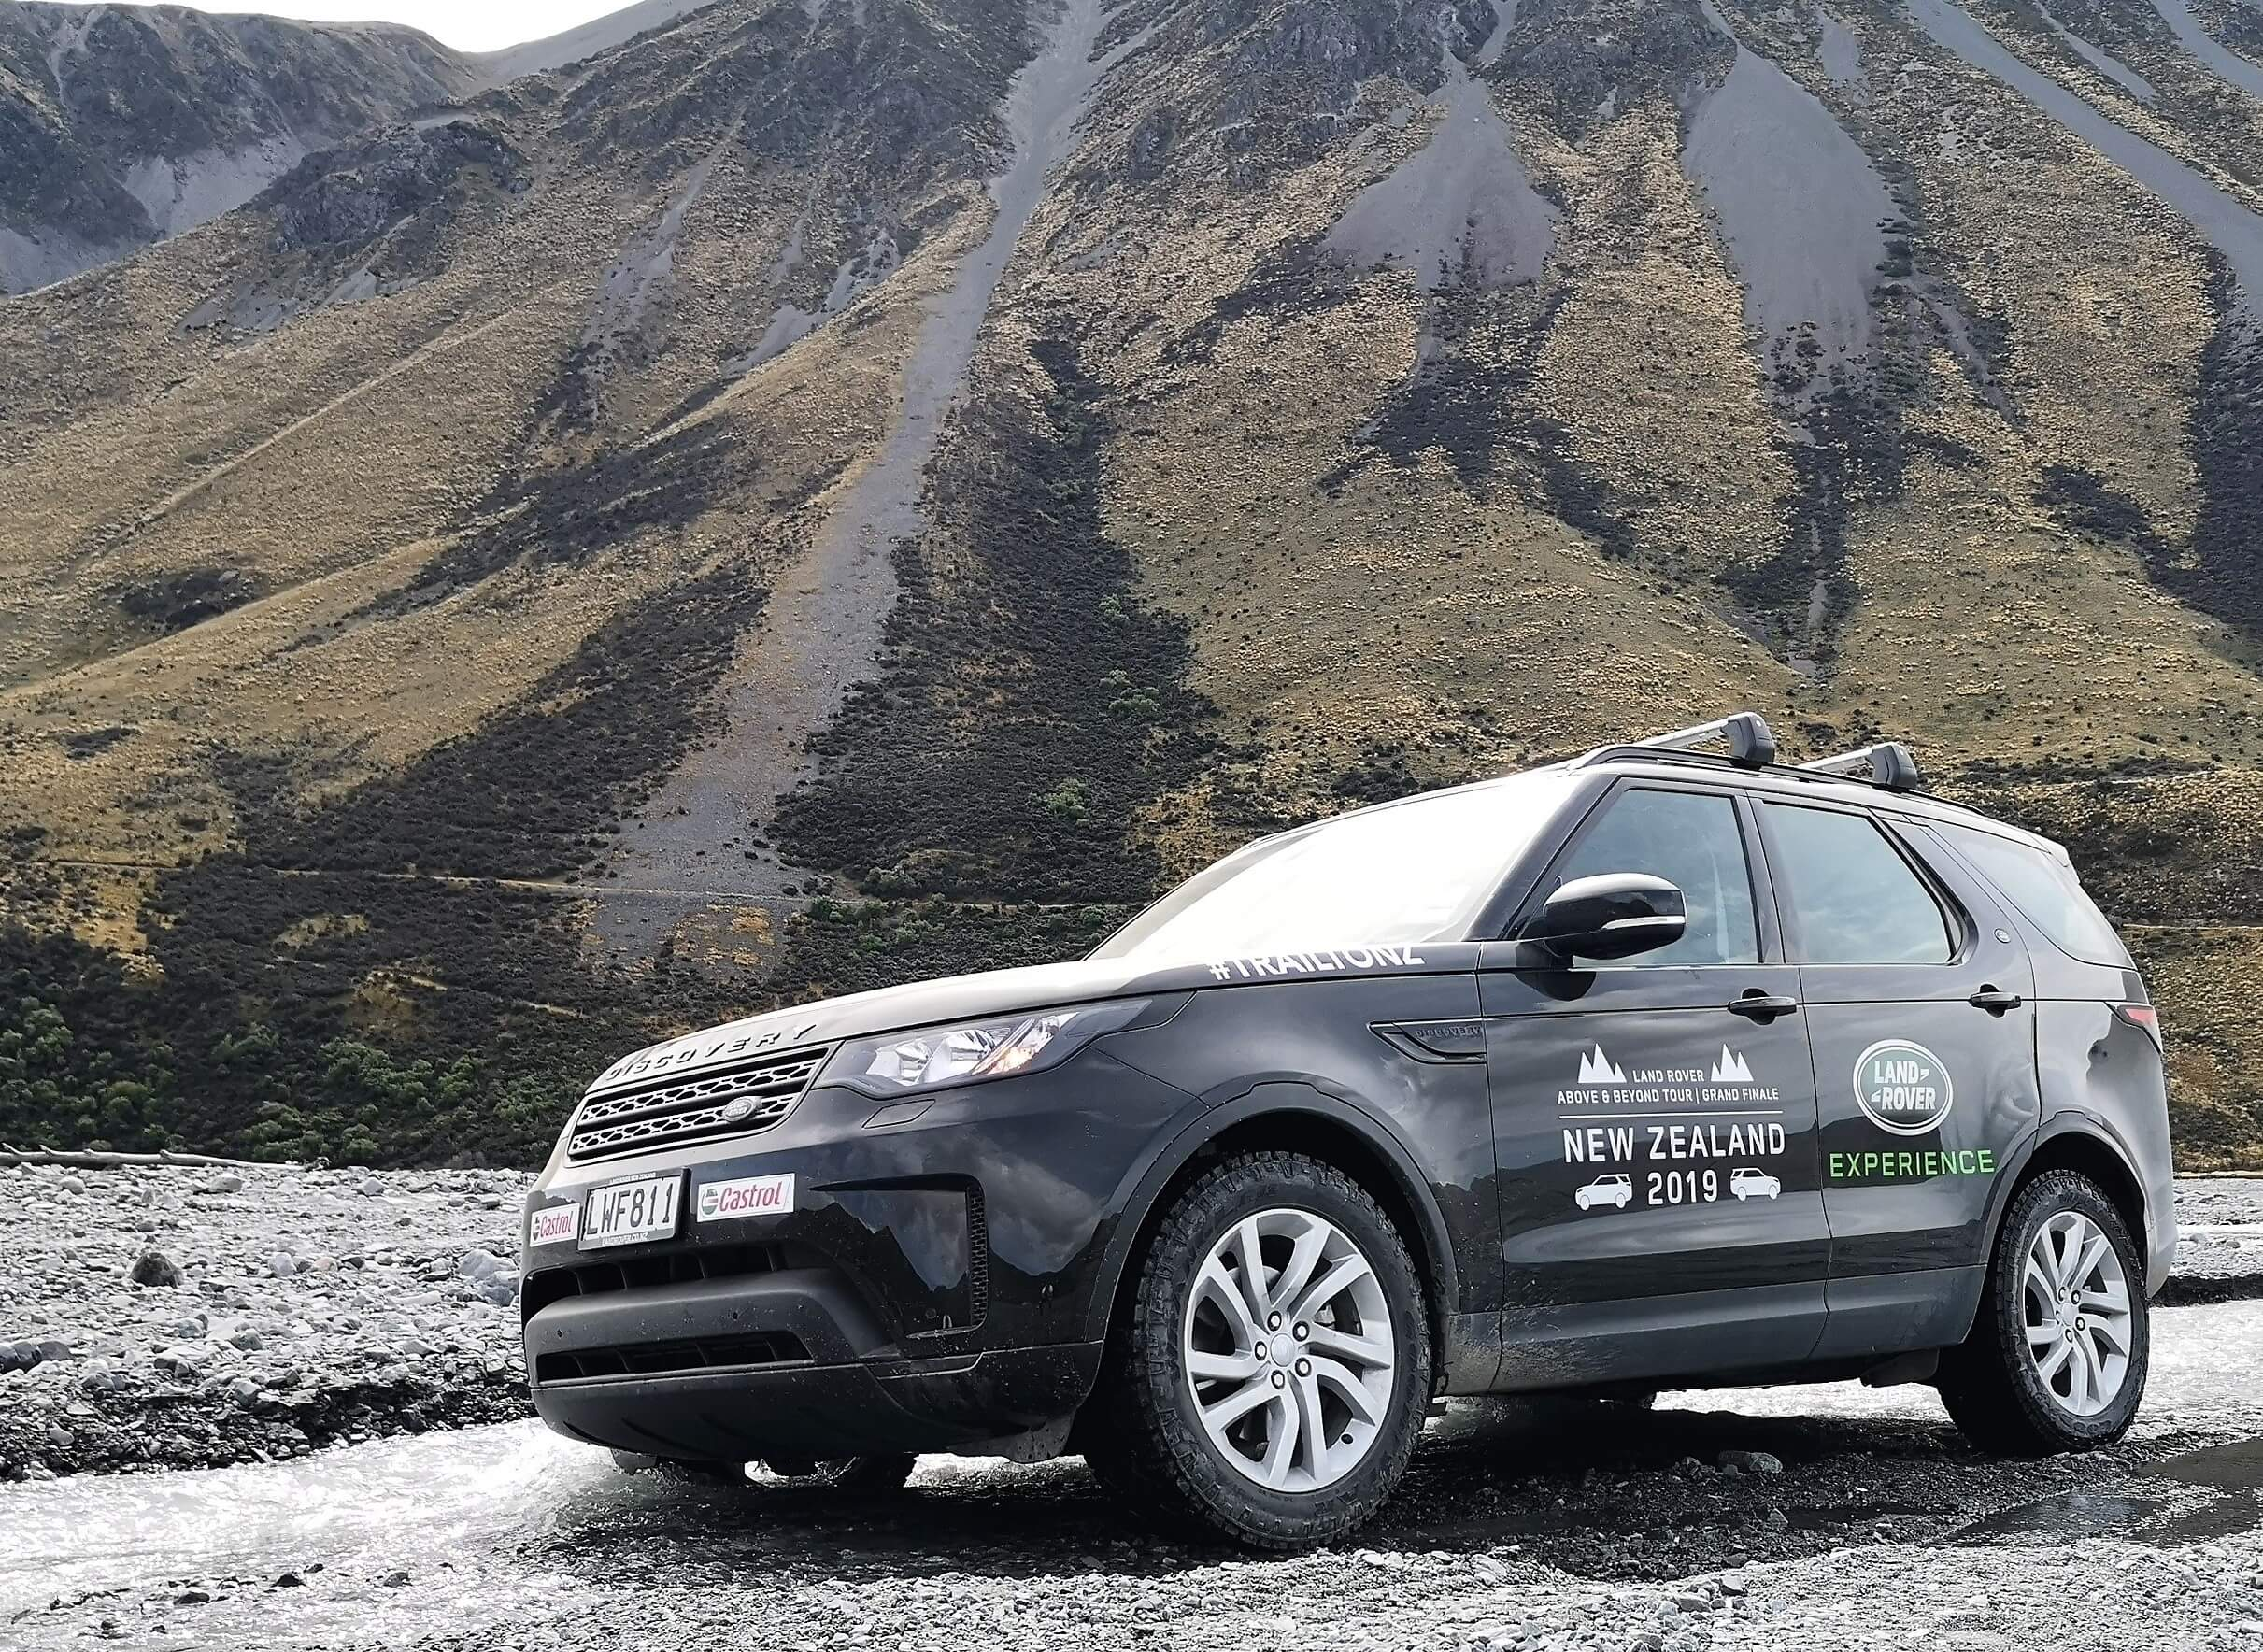 Land Rover Above and Beyond Tour Grand Finale New Zealand